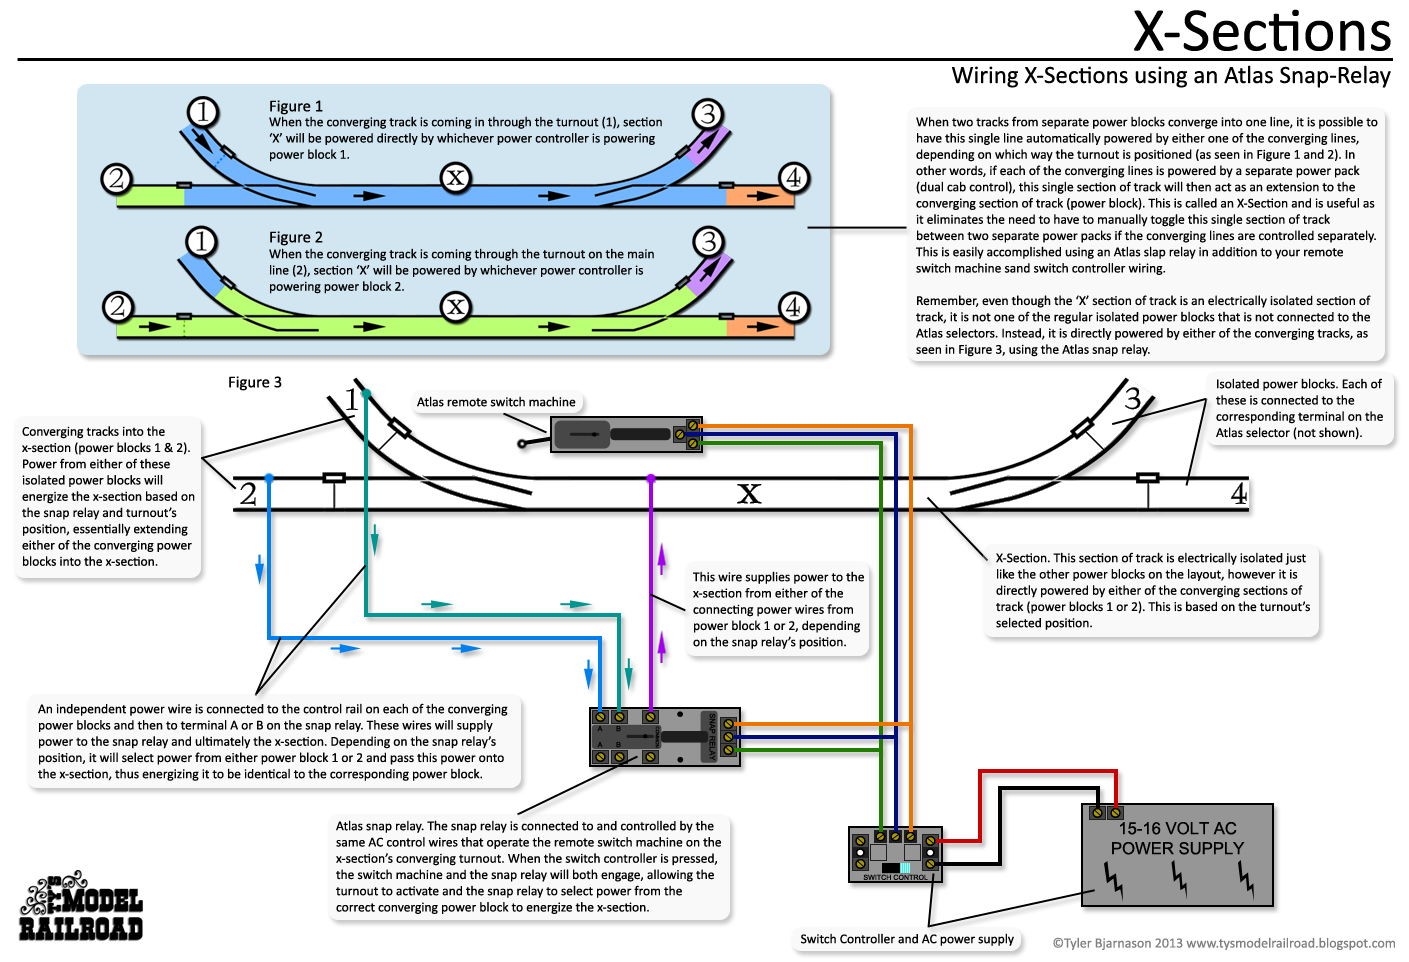 Tys Model Railroad Wiring Diagrams Dc Plug Diagram How To Wire An X Section Using Atlas Snap Relay And Existing Remote Switch